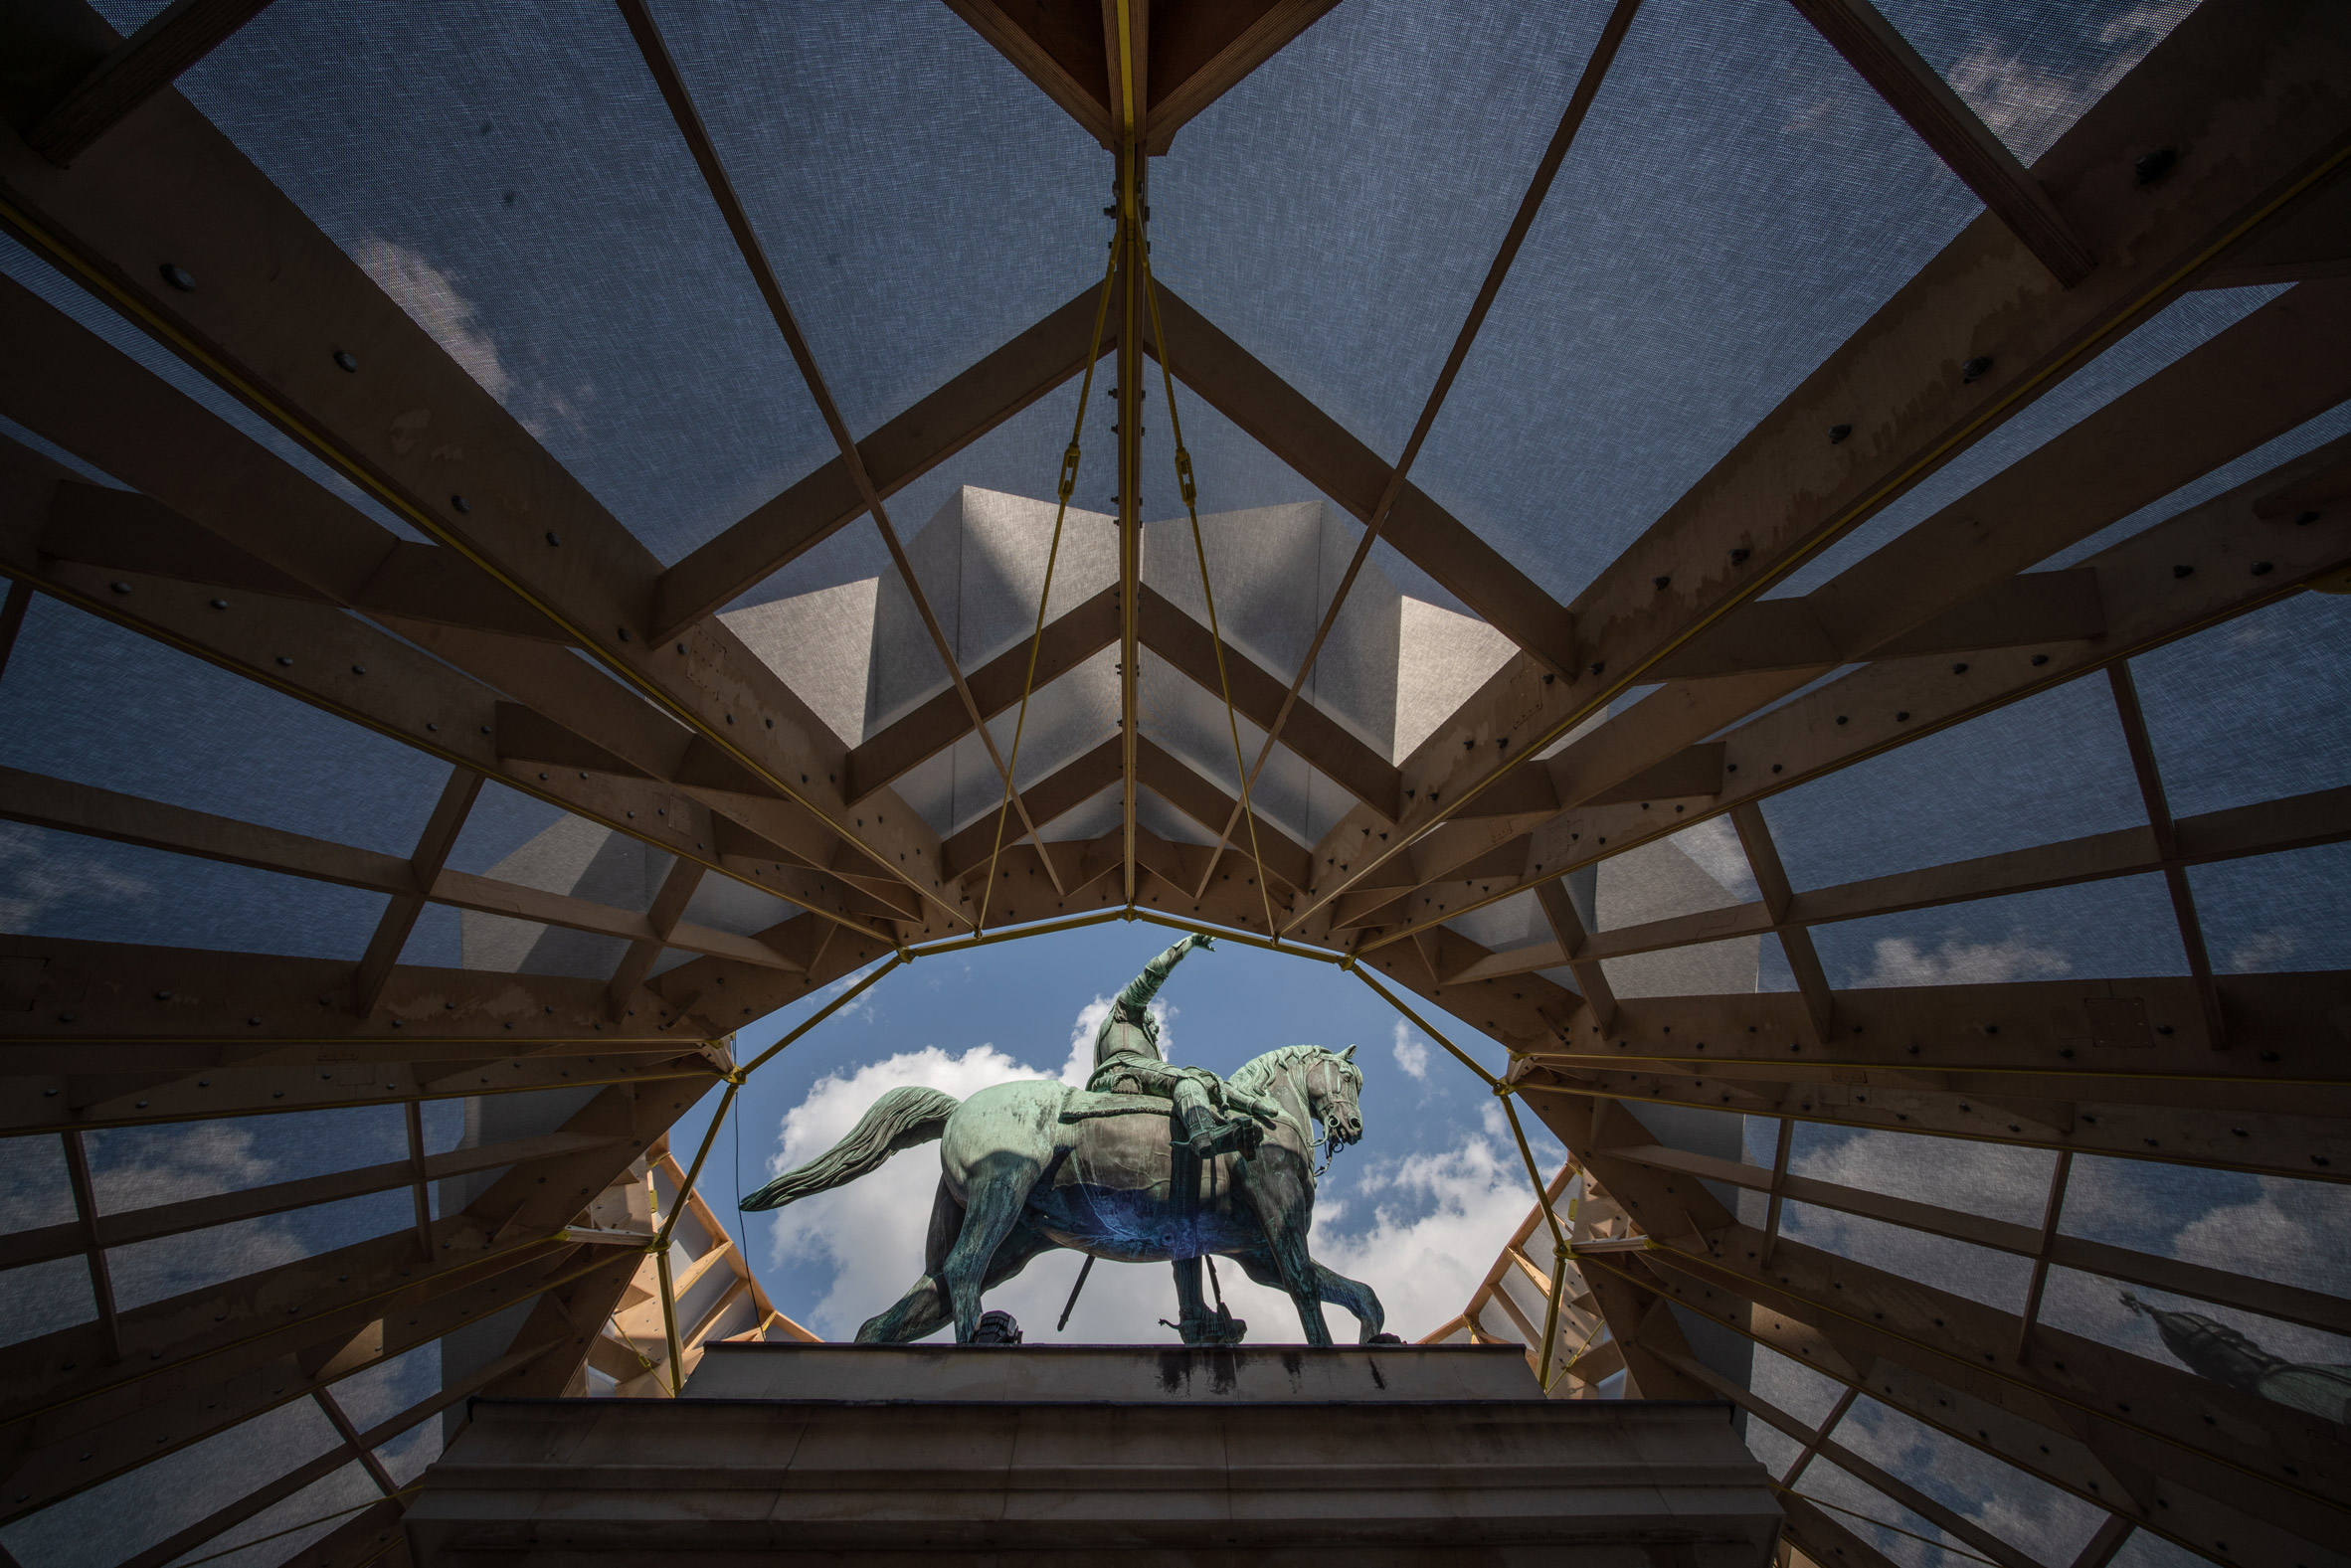 i-will-be-with-you-whatever-studio-morison-architecture-pavilions-munich-germany_dezeen_2364_col_12